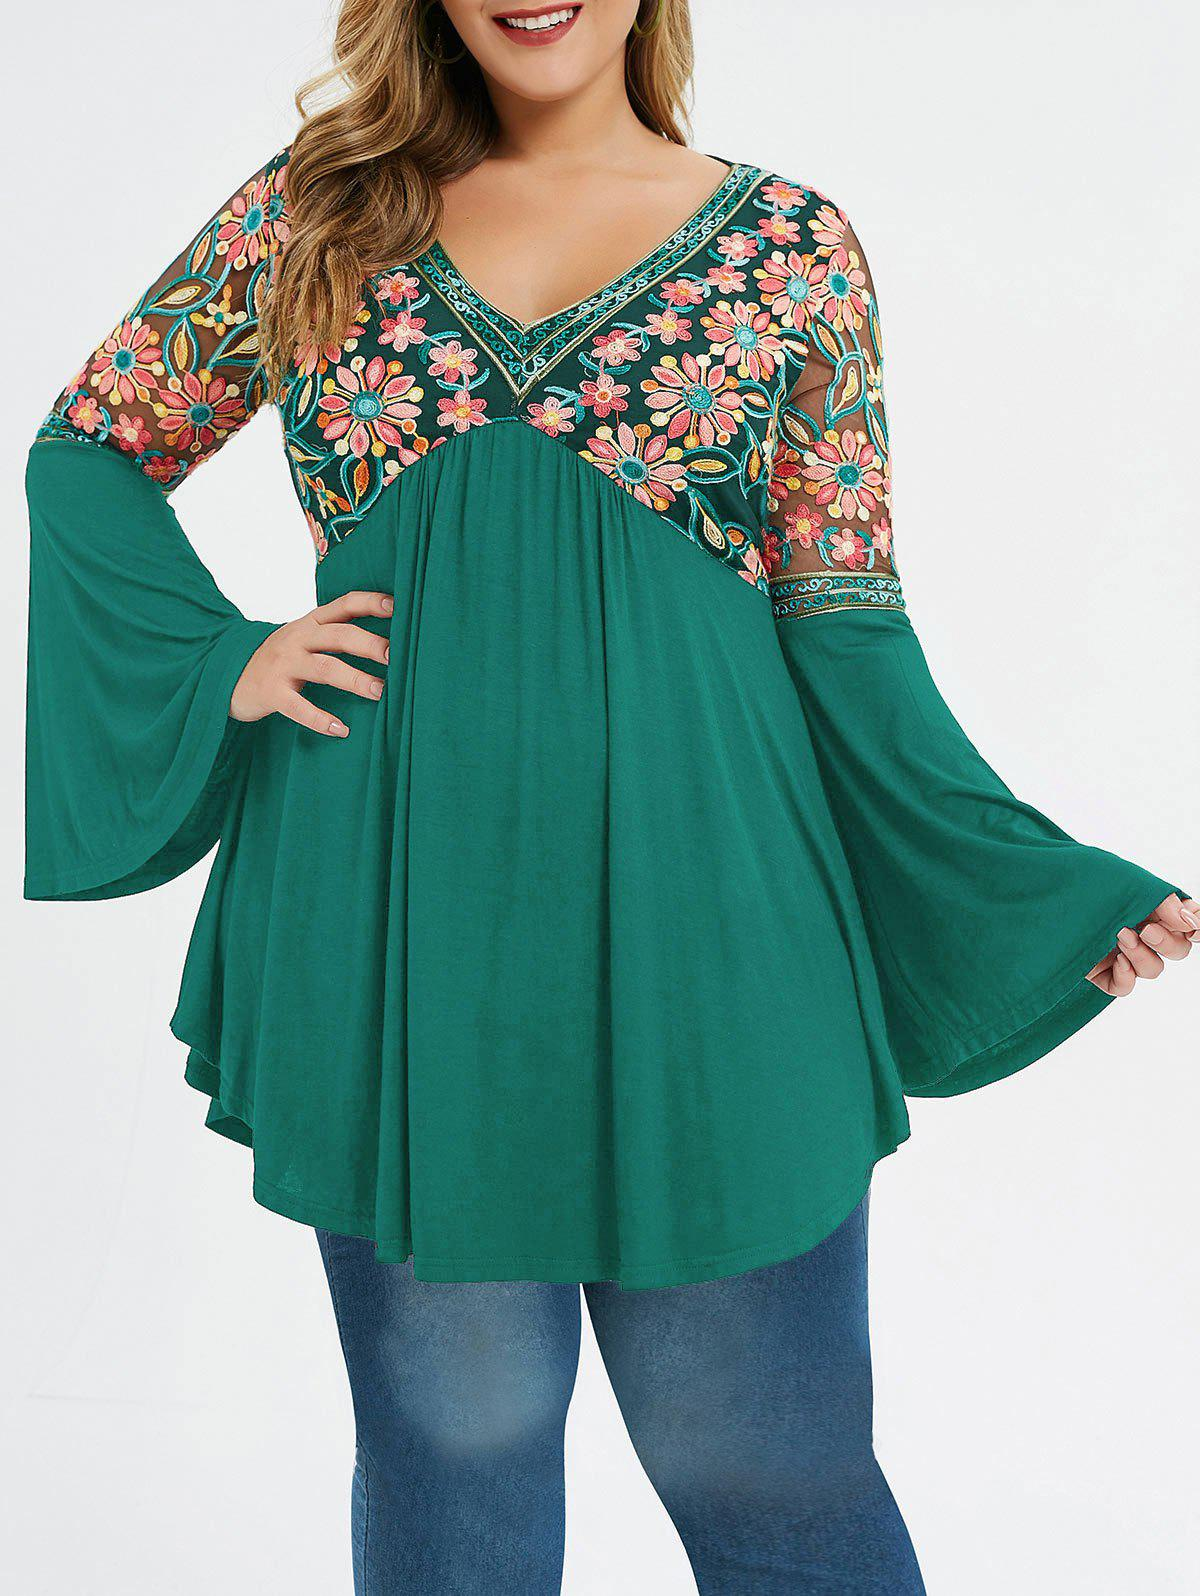 Plus Size Bell Sleeve Embroidery T-shirt - DARK TURQUOISE L